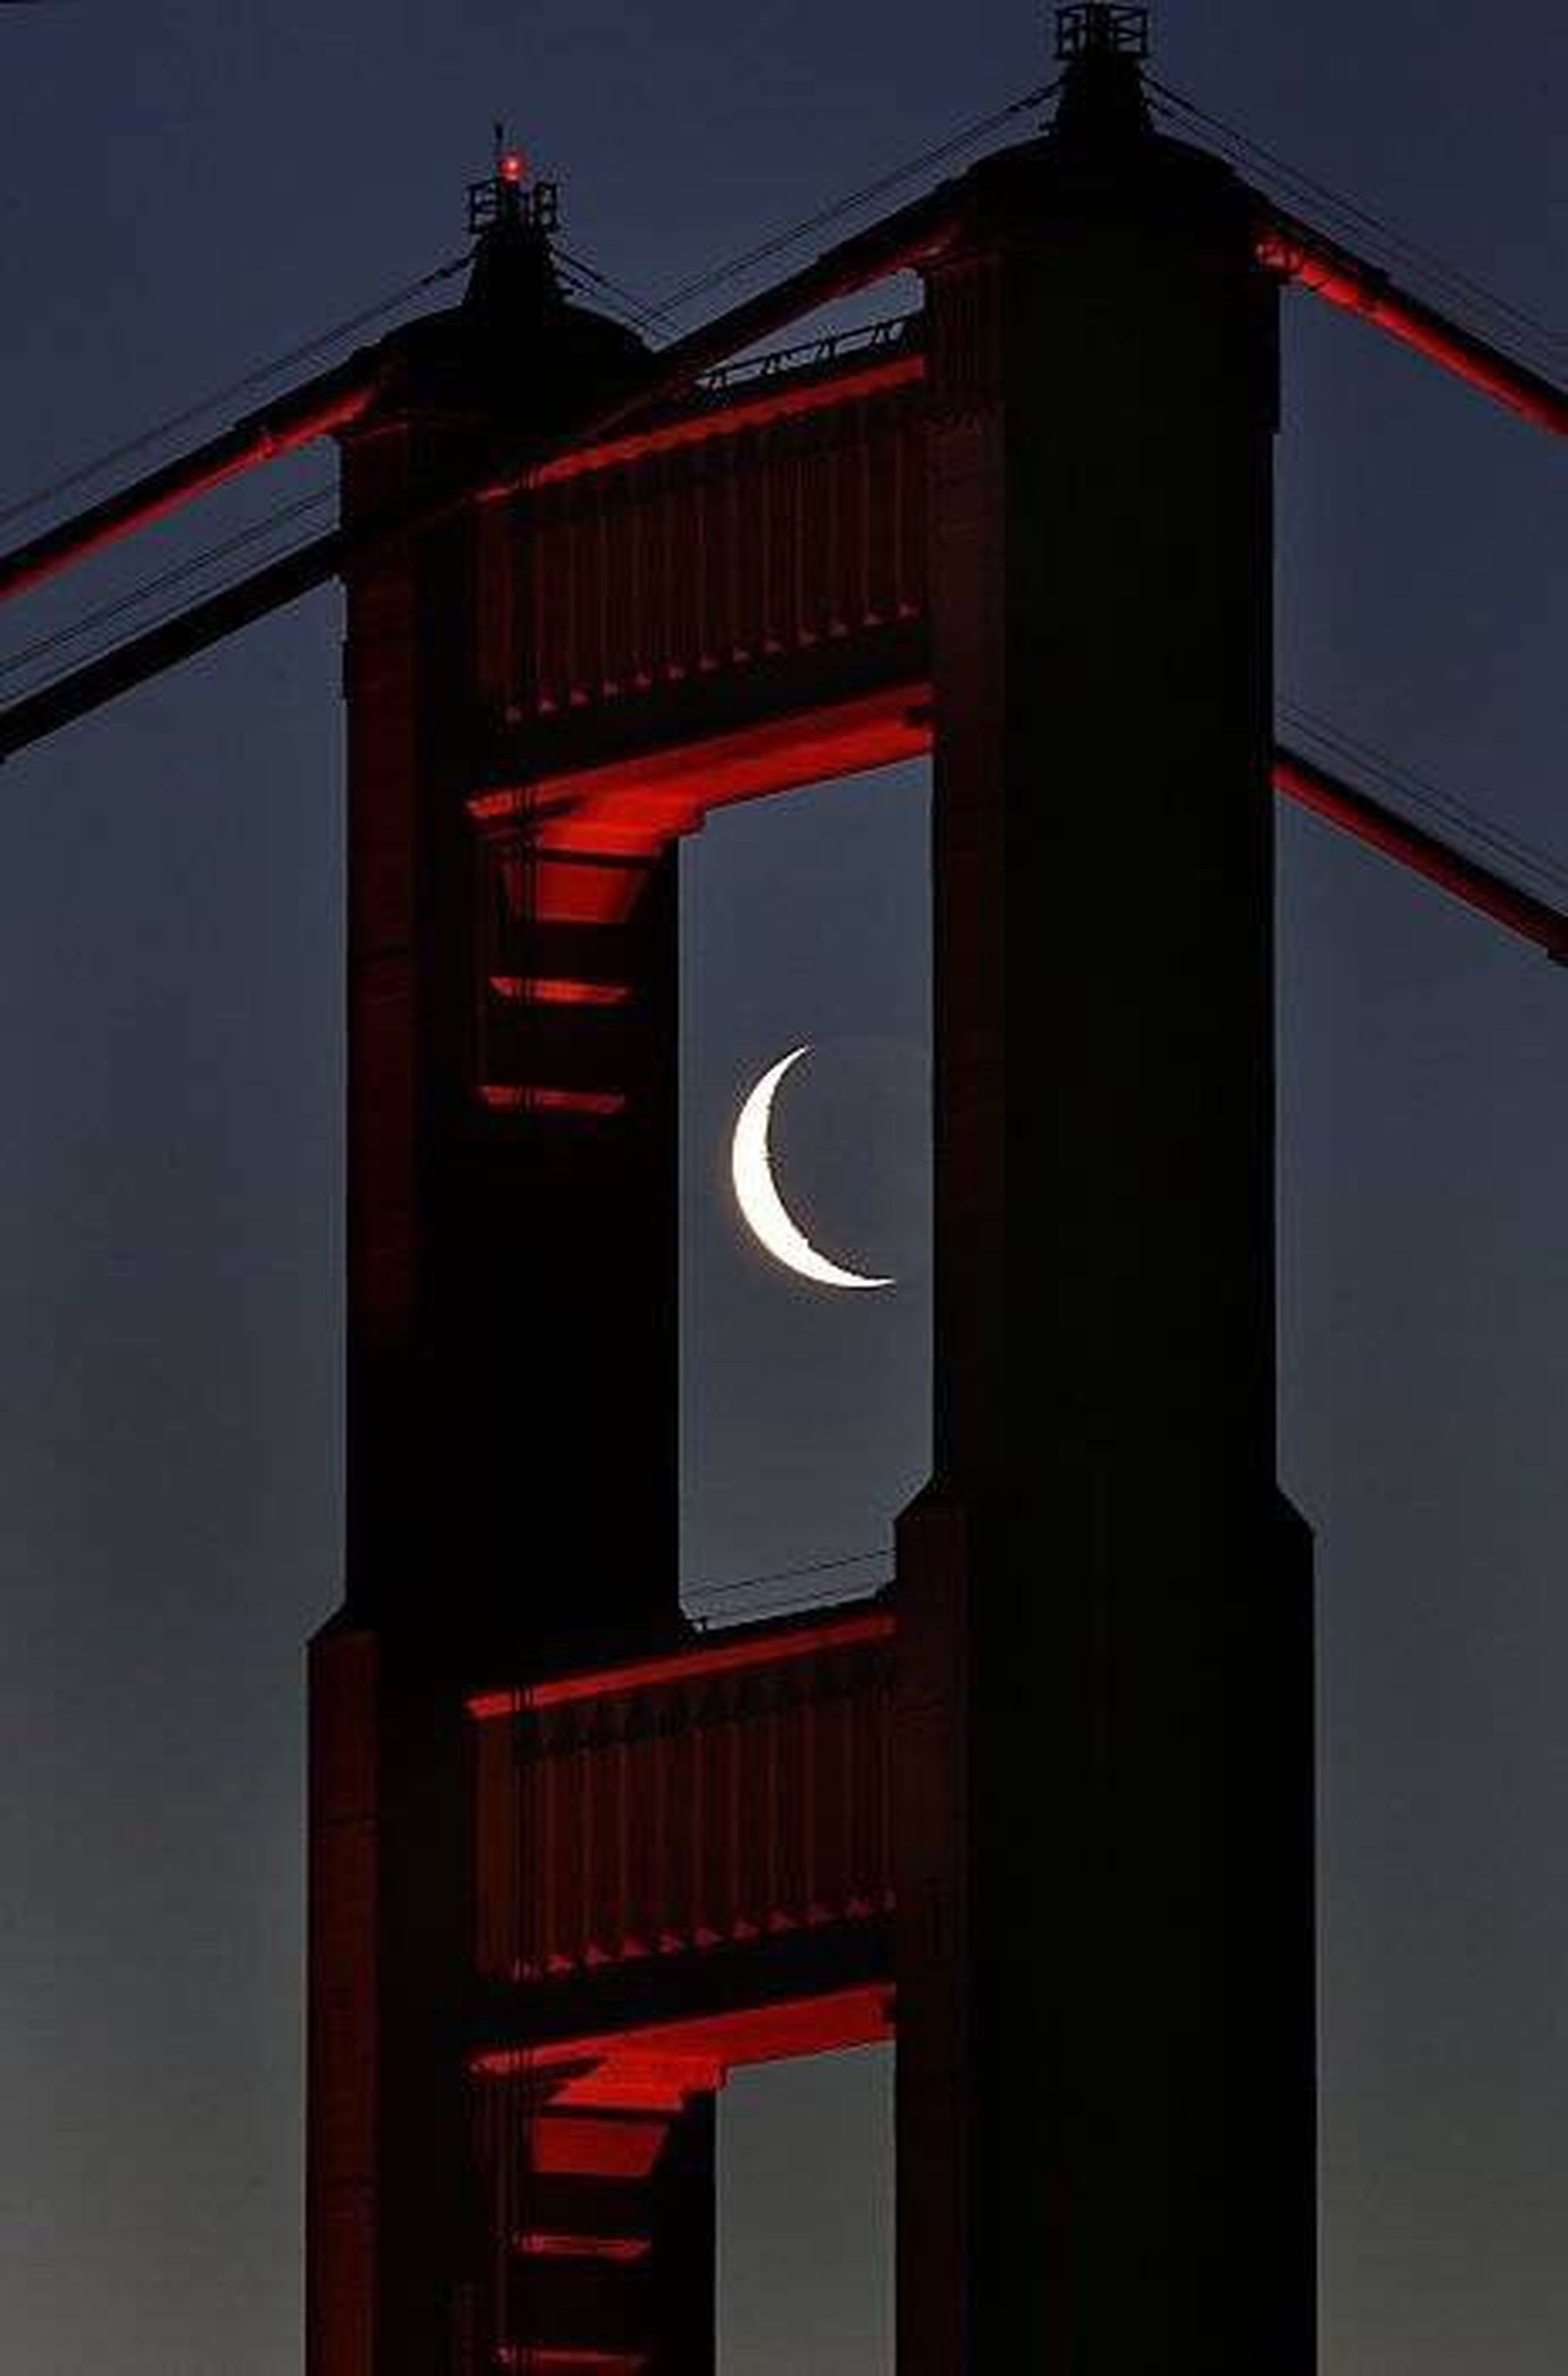 architecture, built structure, building exterior, red, low angle view, illuminated, clear sky, connection, sky, night, bridge - man made structure, no people, house, building, outdoors, lighting equipment, bridge, dusk, architectural column, lantern